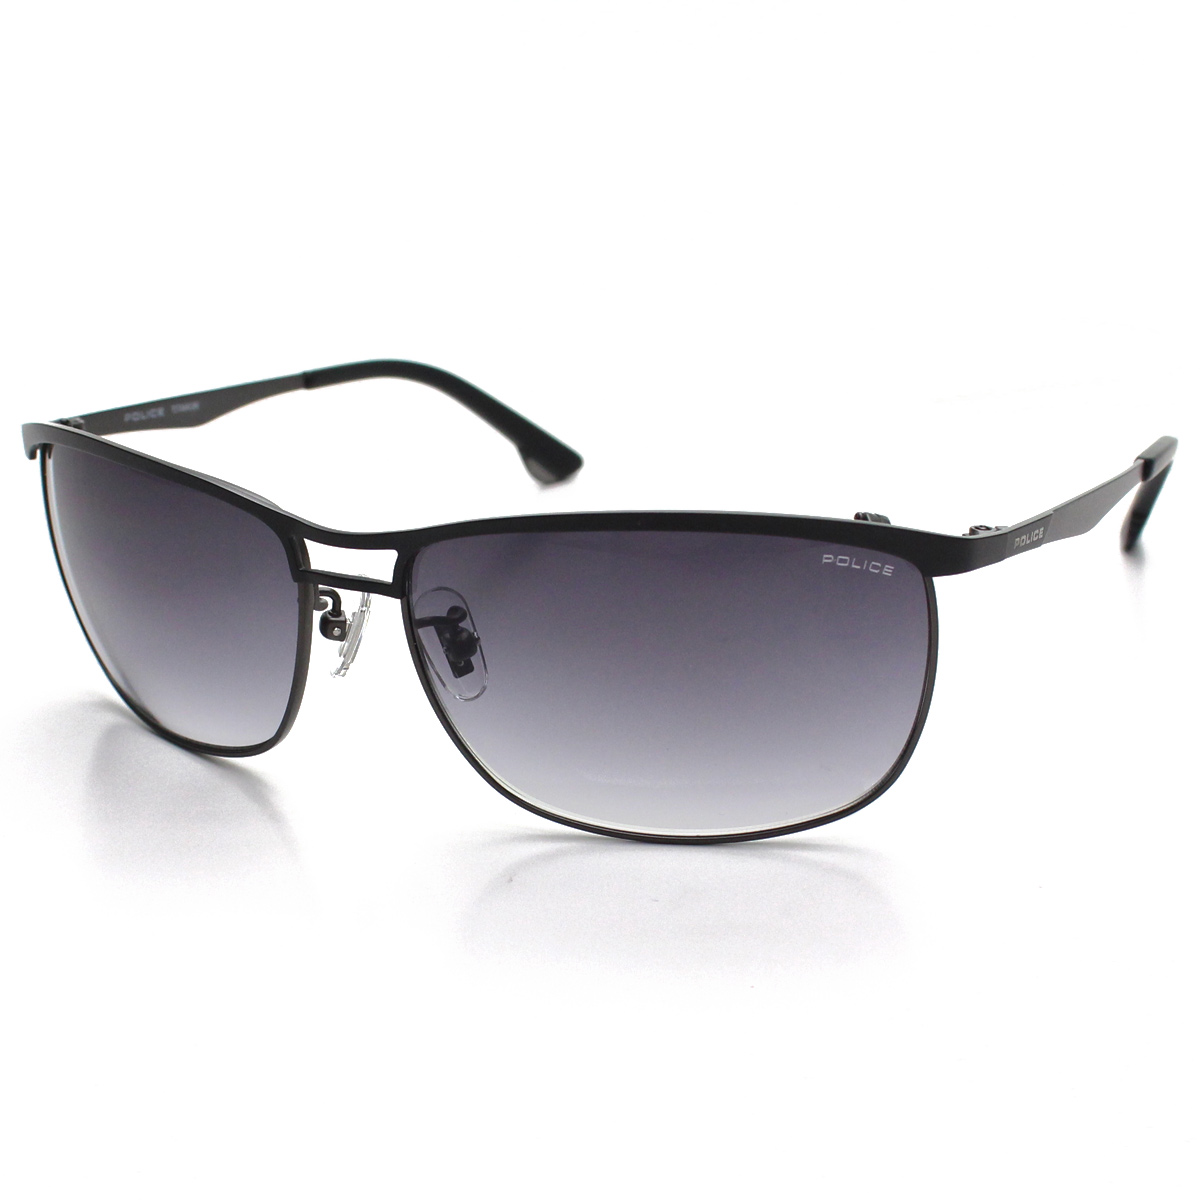 d0097a8a3fea3 Bighit The total brand wholesale  Police POLICE sunglasses SPL918J ...